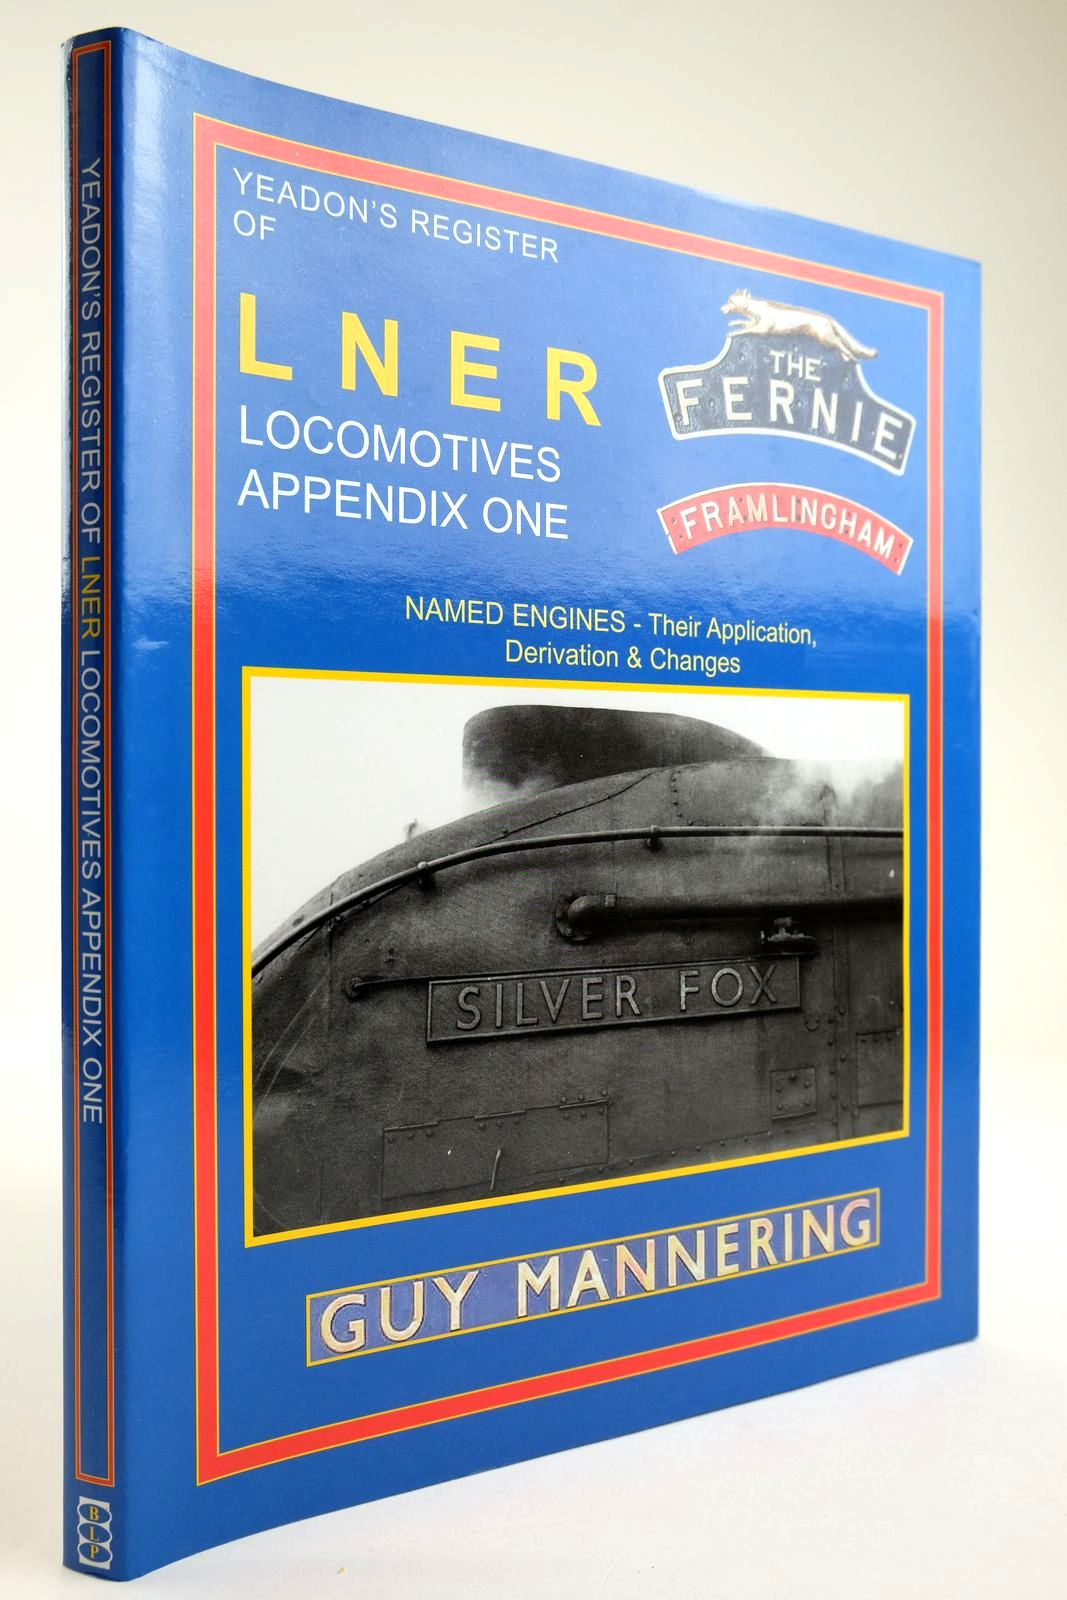 Photo of YEADONS REGISTER OF LNER LOCOMOTIVES APPENDIX ONE written by Yeadon, W.B. published by Book Law Publications (STOCK CODE: 2133579)  for sale by Stella & Rose's Books